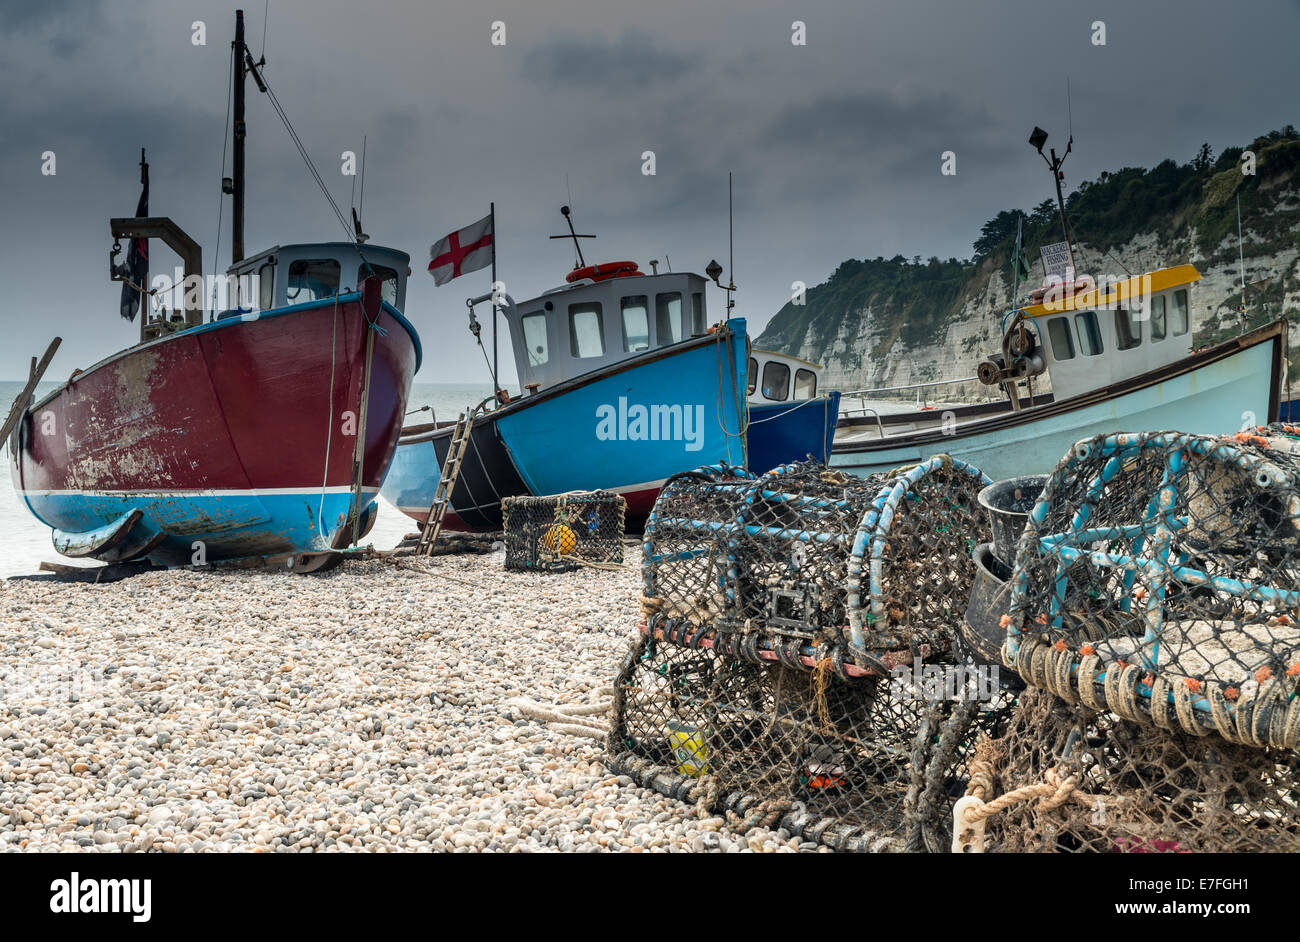 Fishing boats moored on the beach at Beer in Dorset, United Kingdom - Stock Image